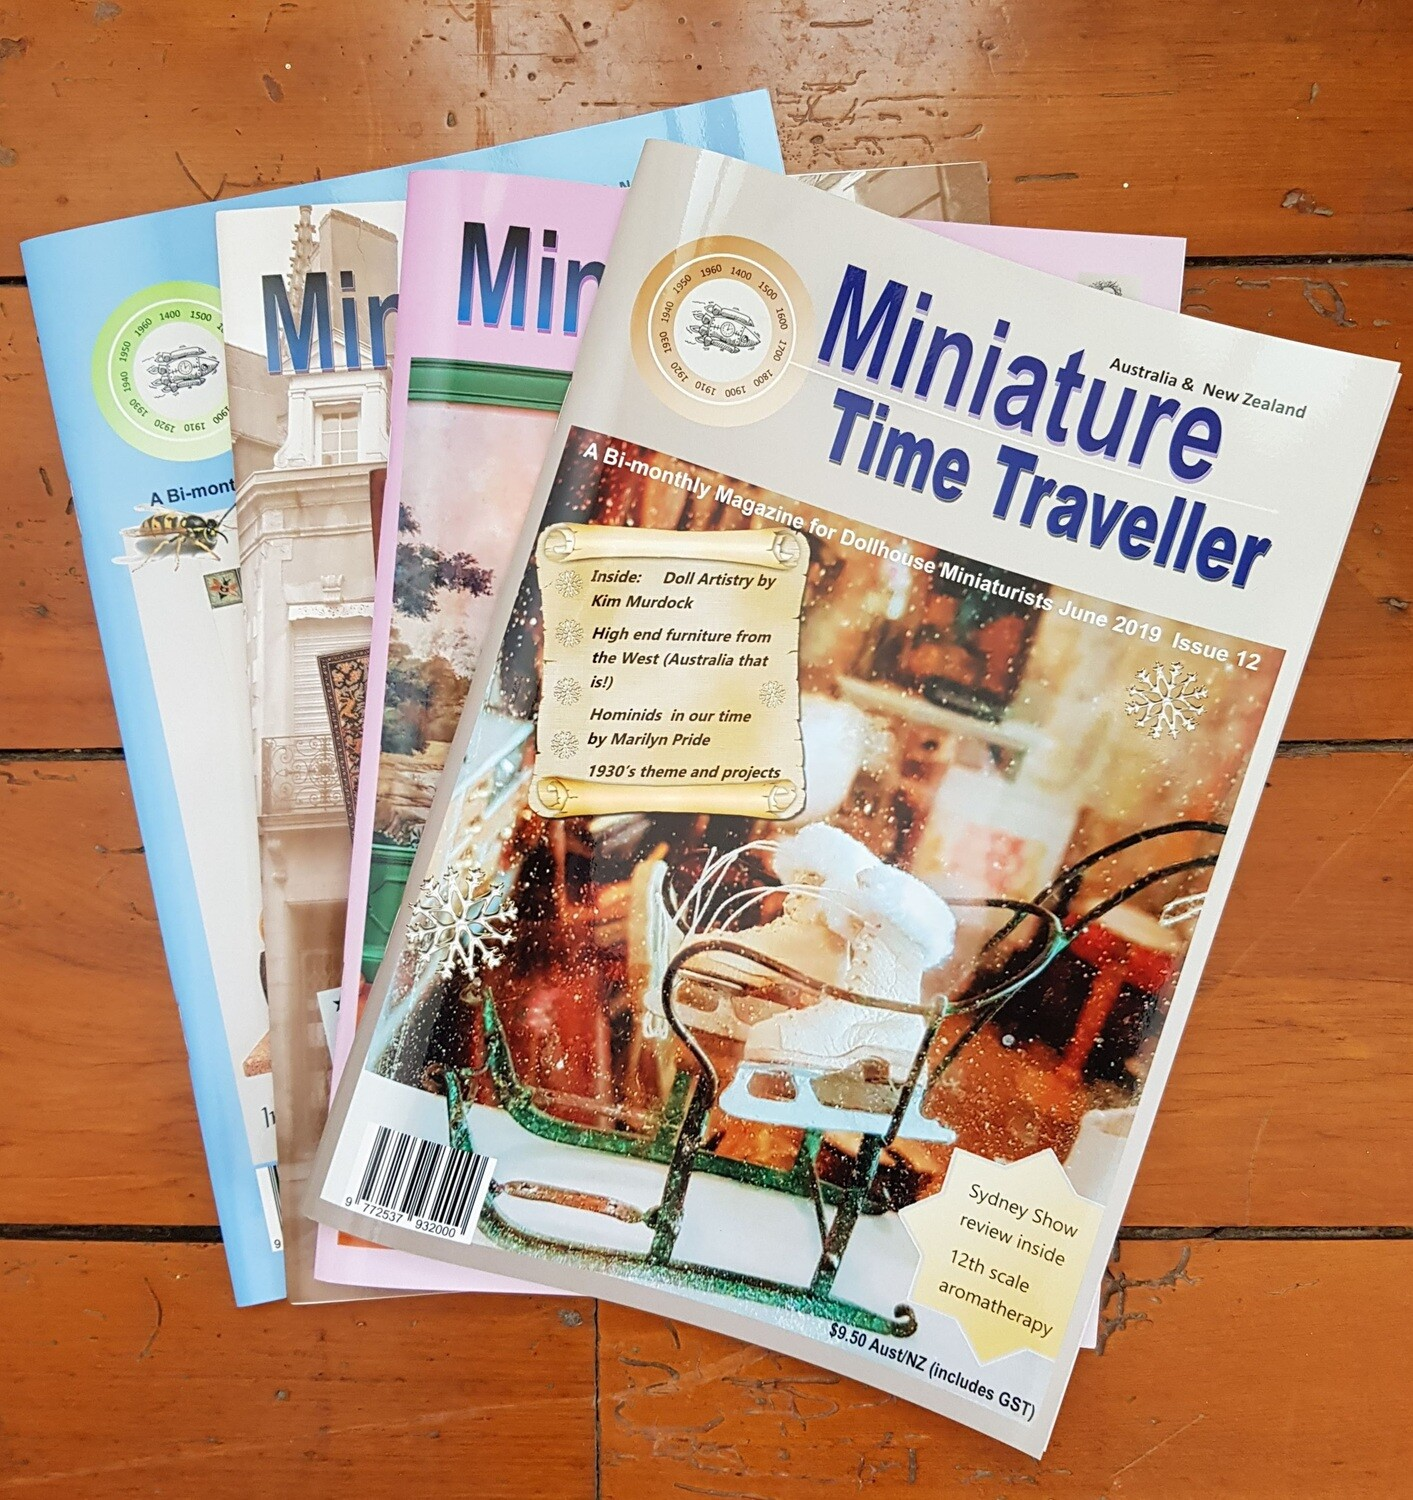 Miniature Time Traveller Magazine Annual Print Subscription - Auto Renew (Post and GST Inc.) $15 each 2 months.